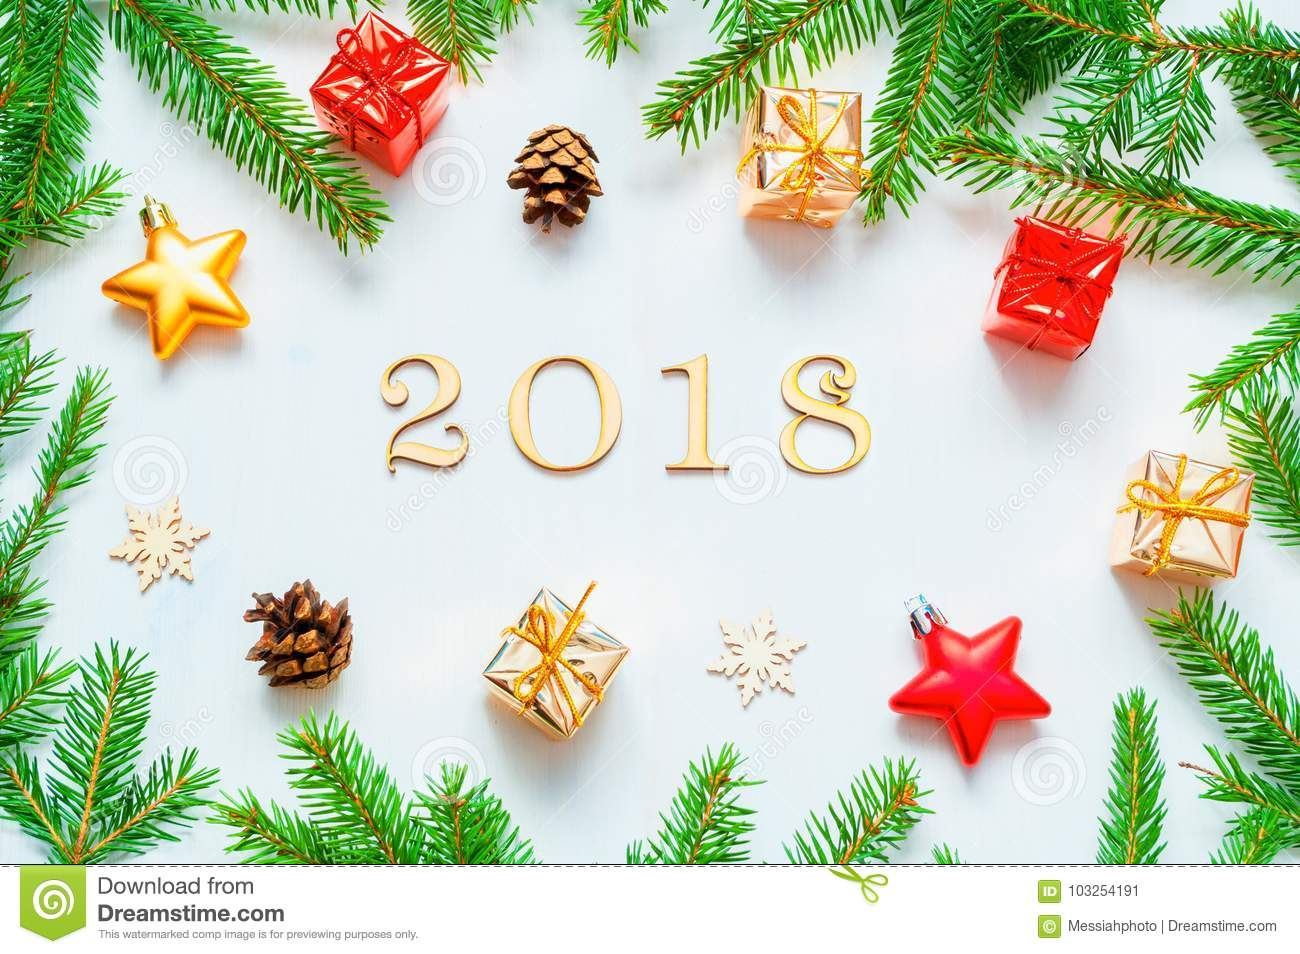 New Year 2018 Background With 2018 Figures,Christmas Toys, Fir Branches-New Year 2018 ...